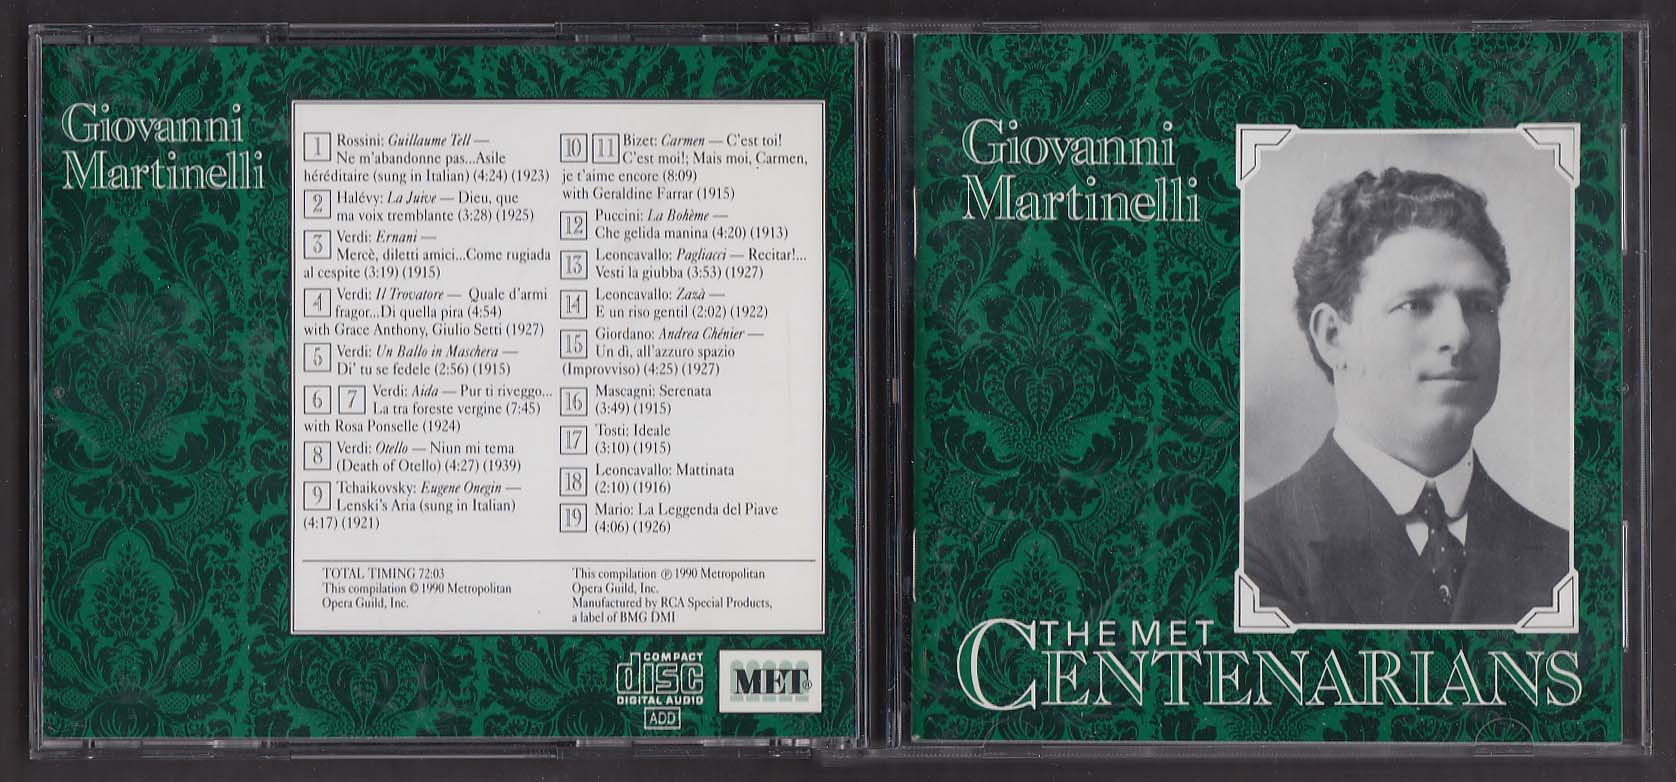 Image for Giovanni Martinelli The Met Centenarians MET 706 CD 1990